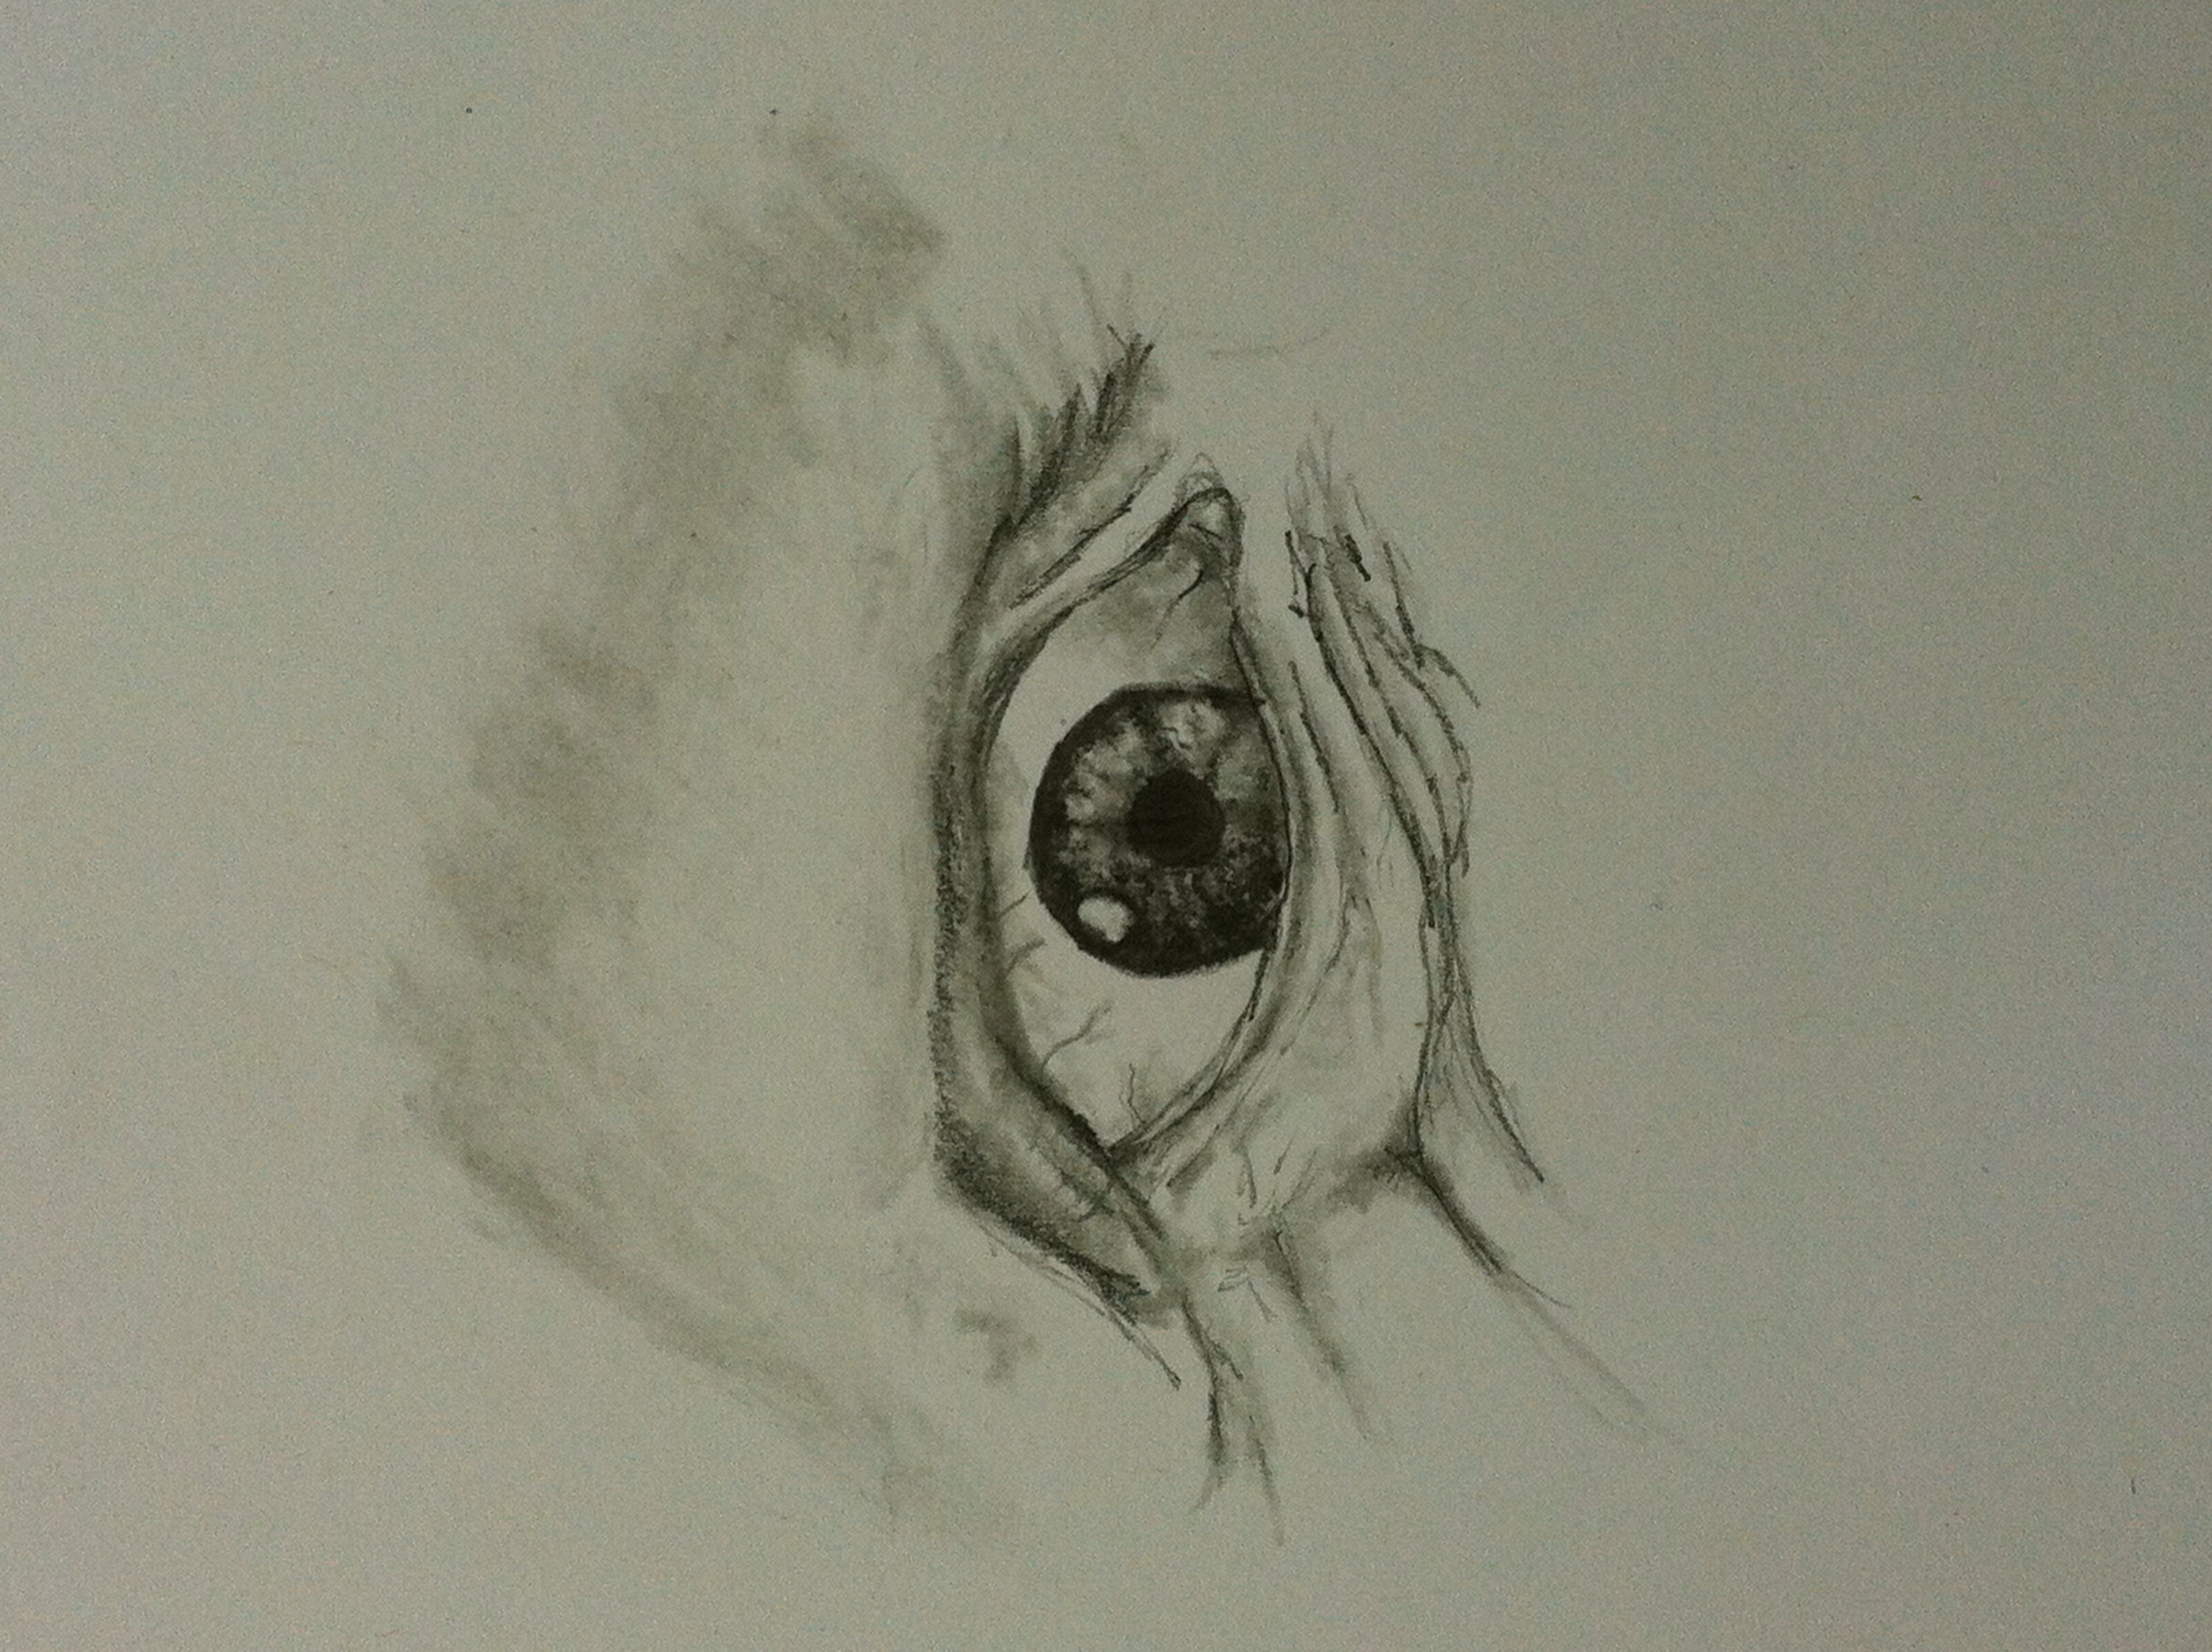 2592x1936 Angry Eye I Drew Sketching Angry Eyes, Drawing